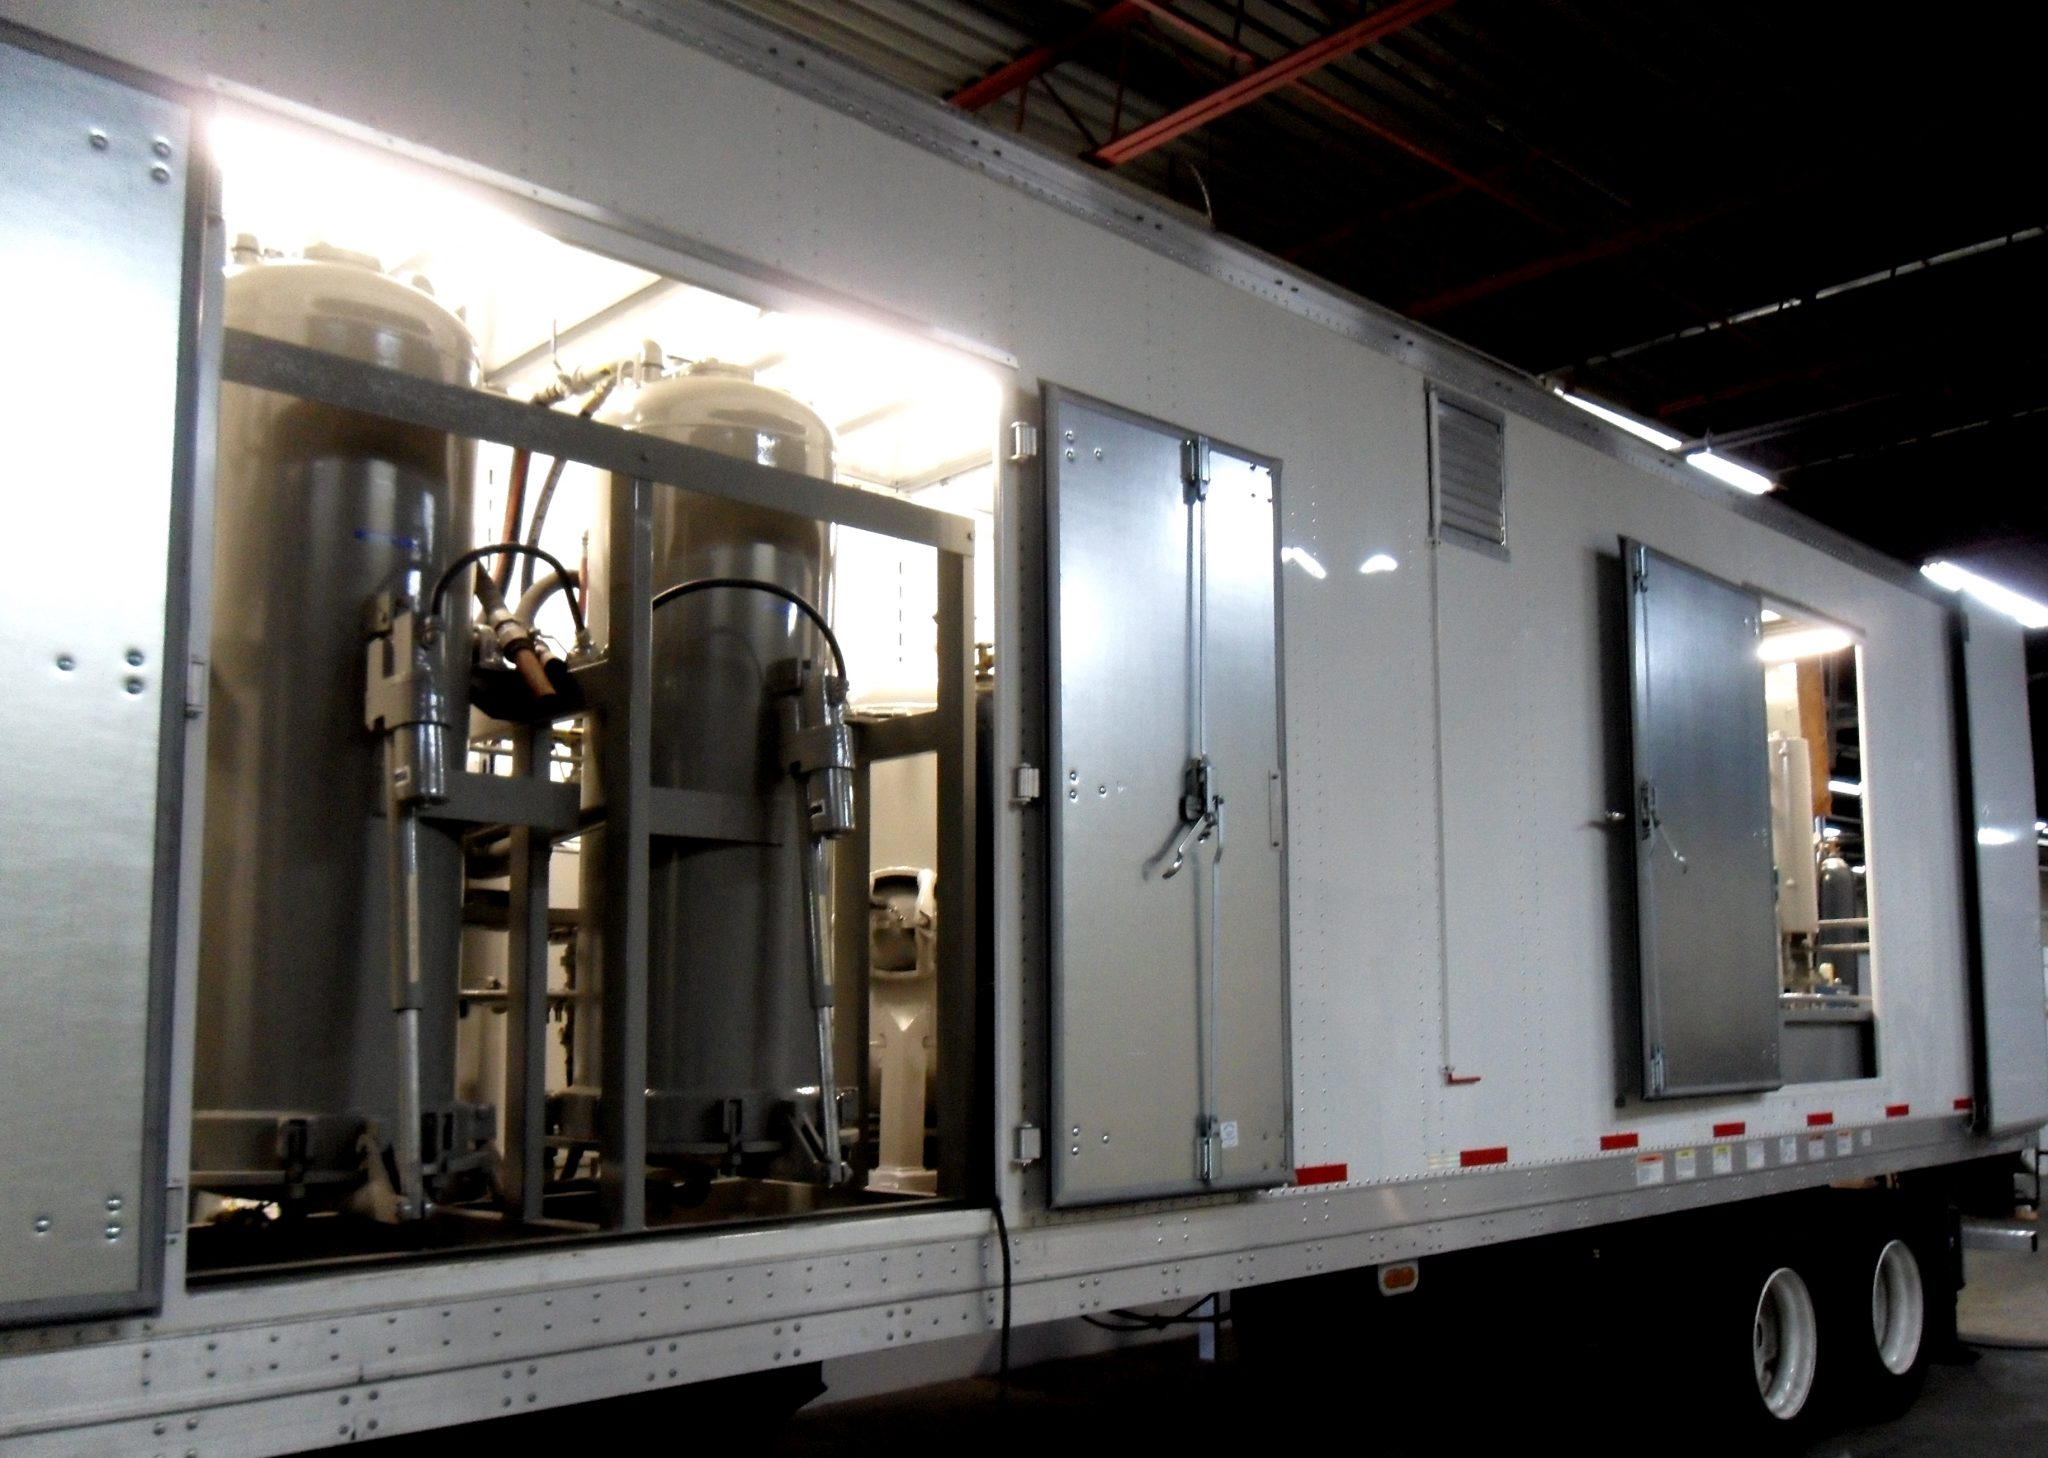 PCB removal system trailer 1